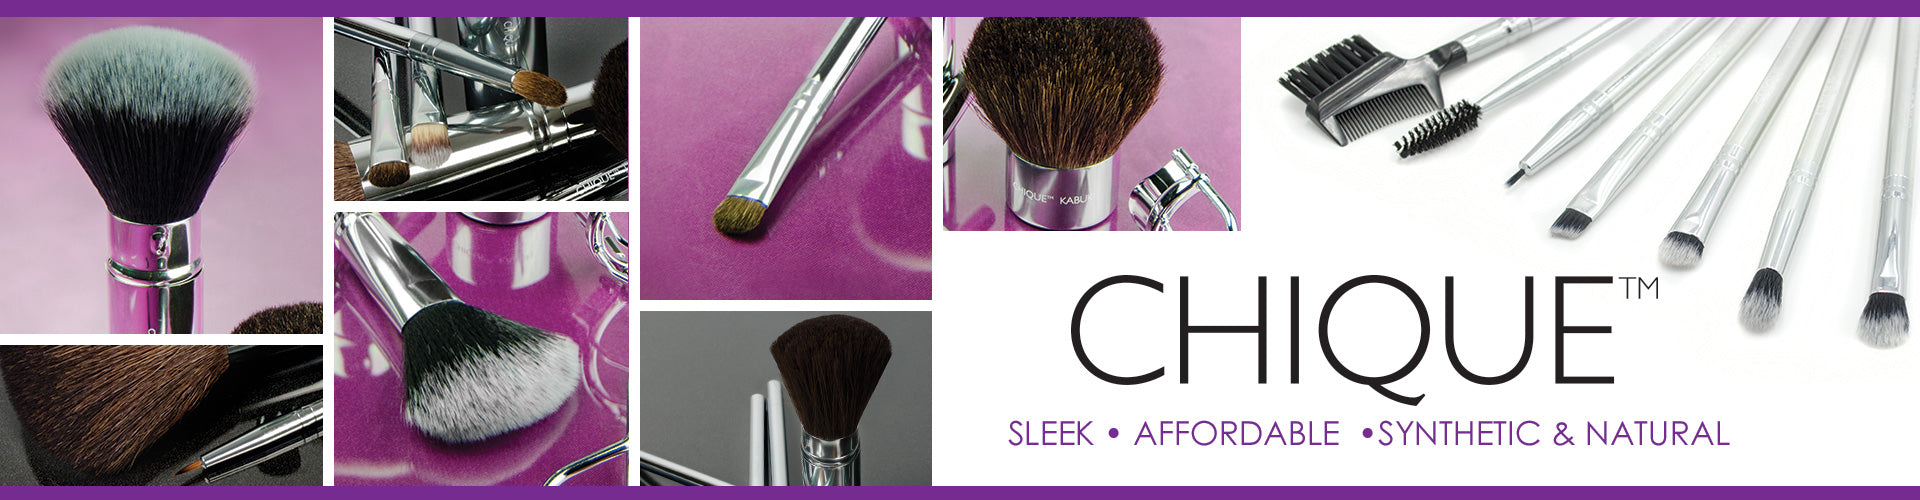 Chique™ Products